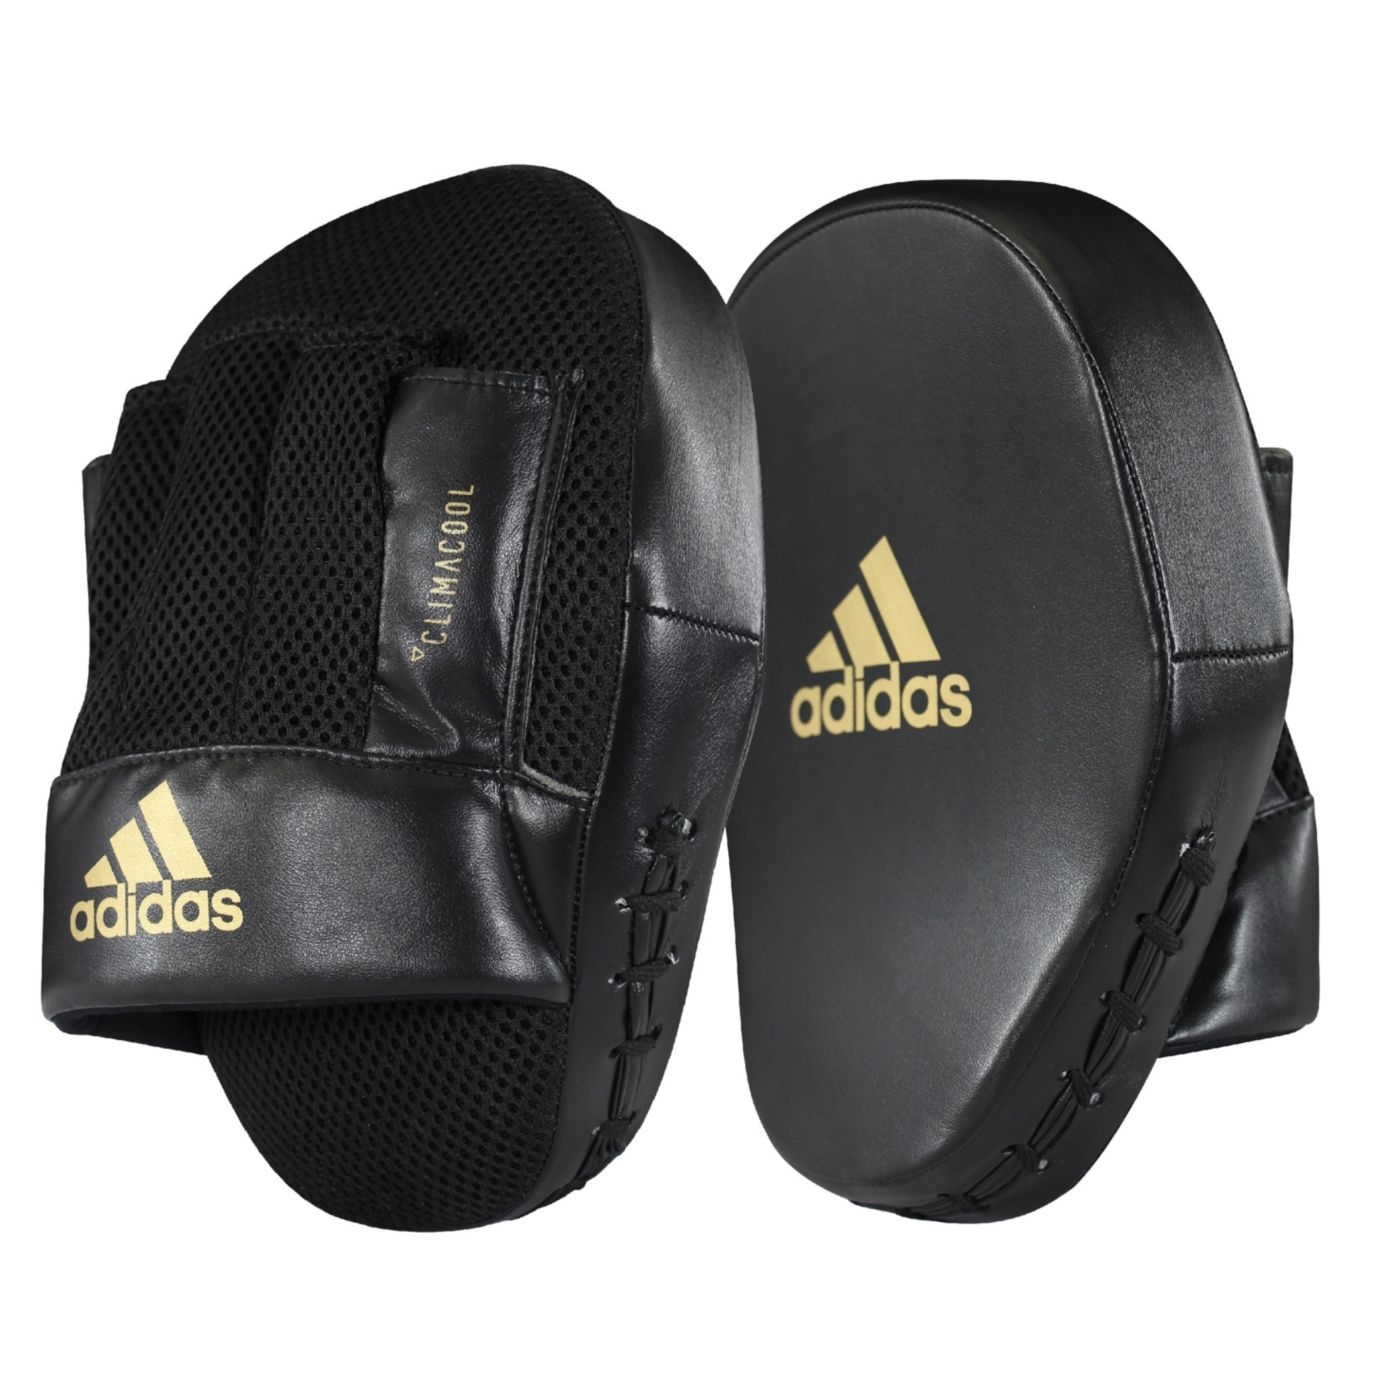 adidas Curved Short Focus Mitts